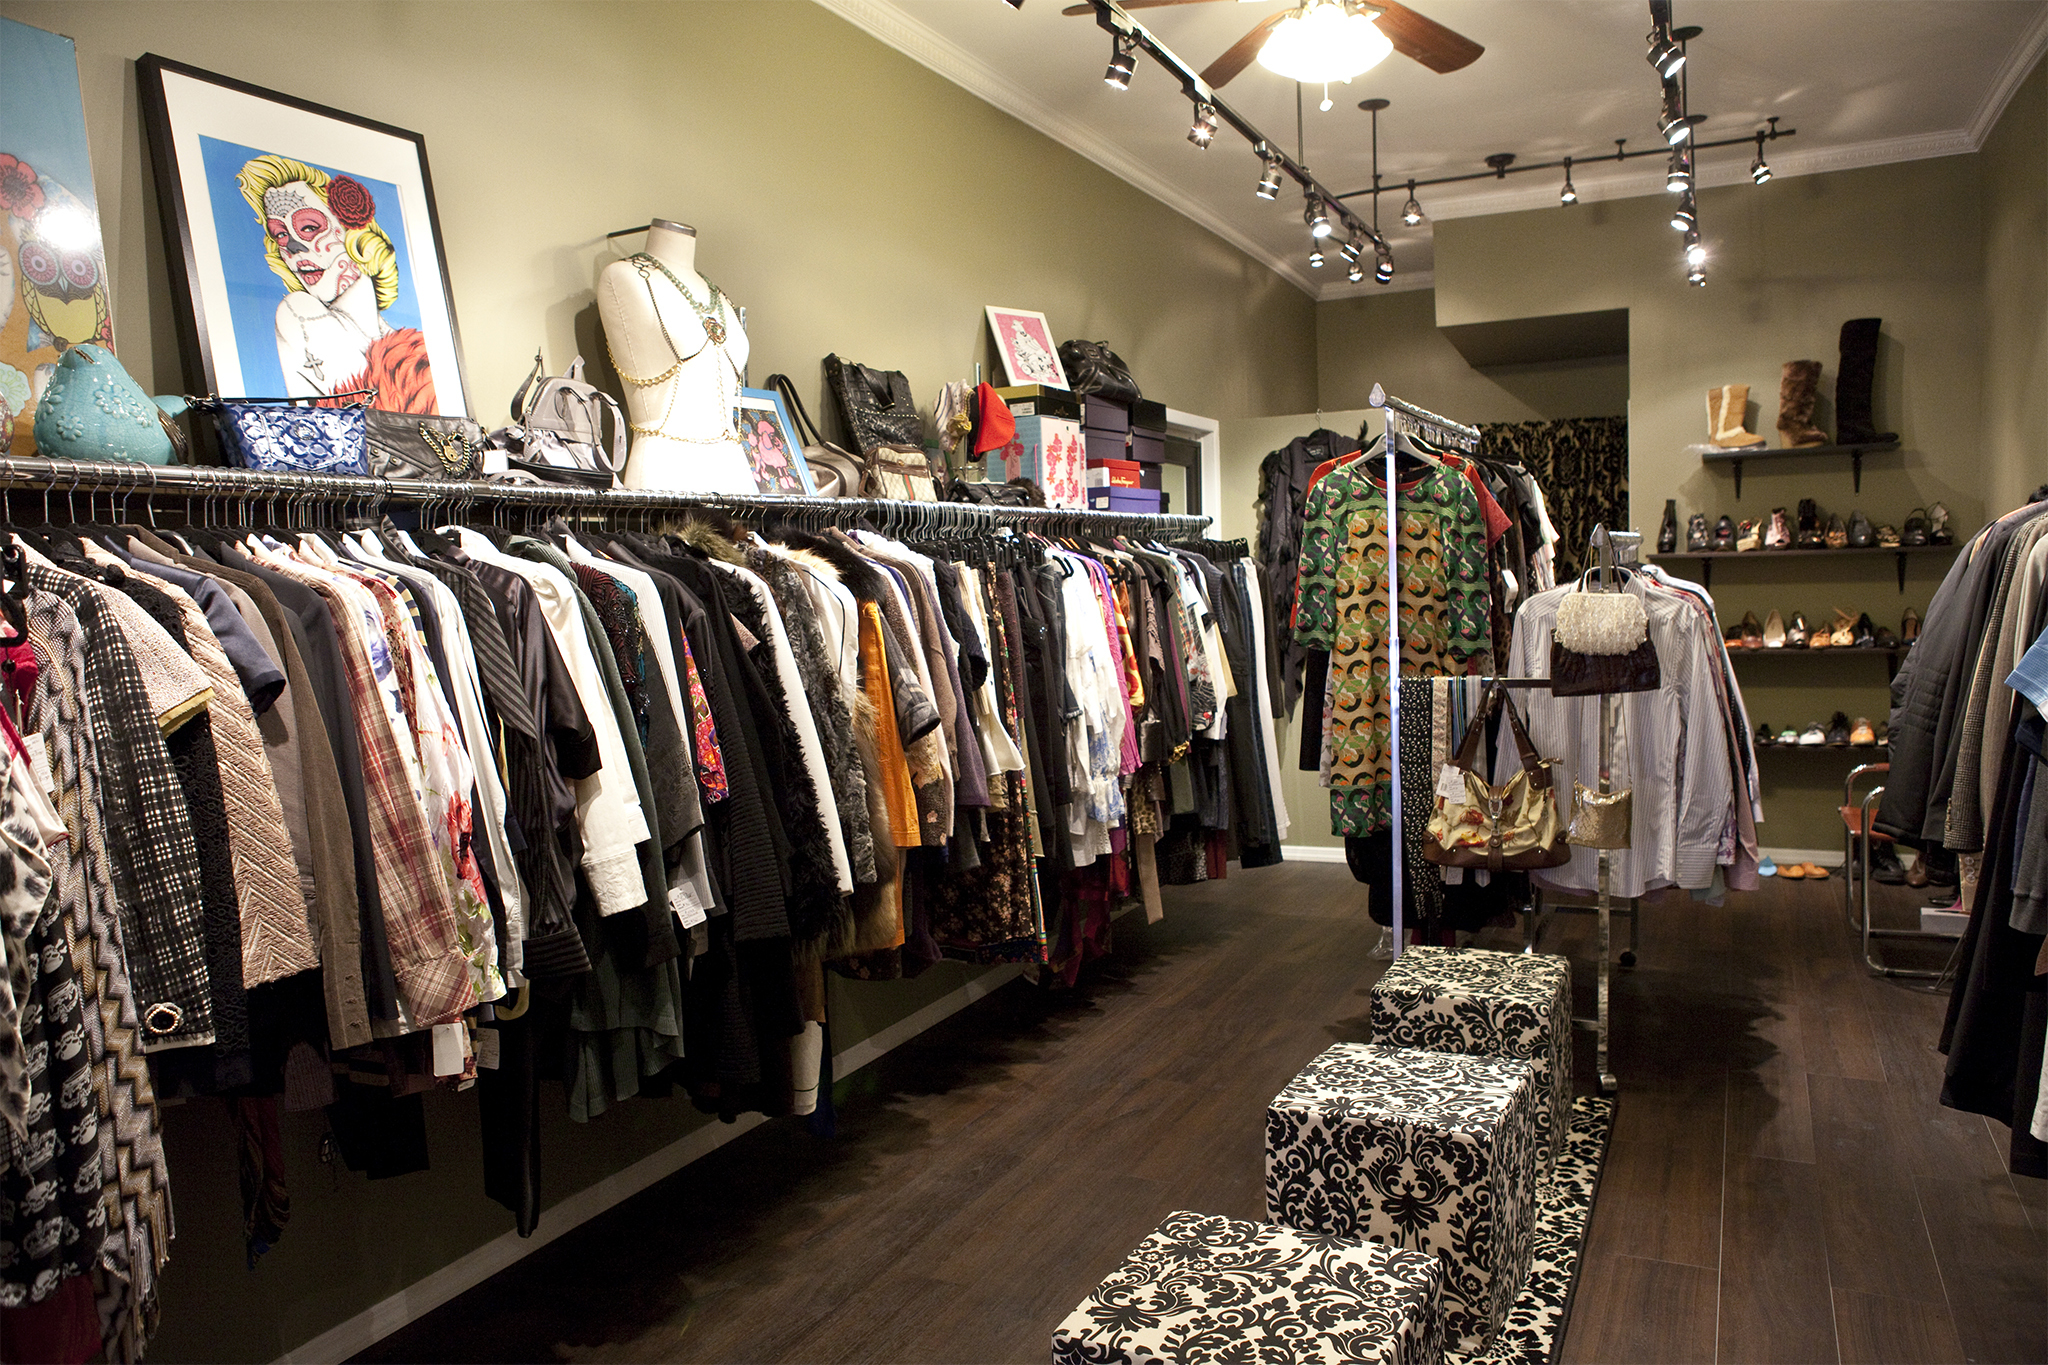 Designer Clothing Stores In Manhattan Ny The best consignment stores in